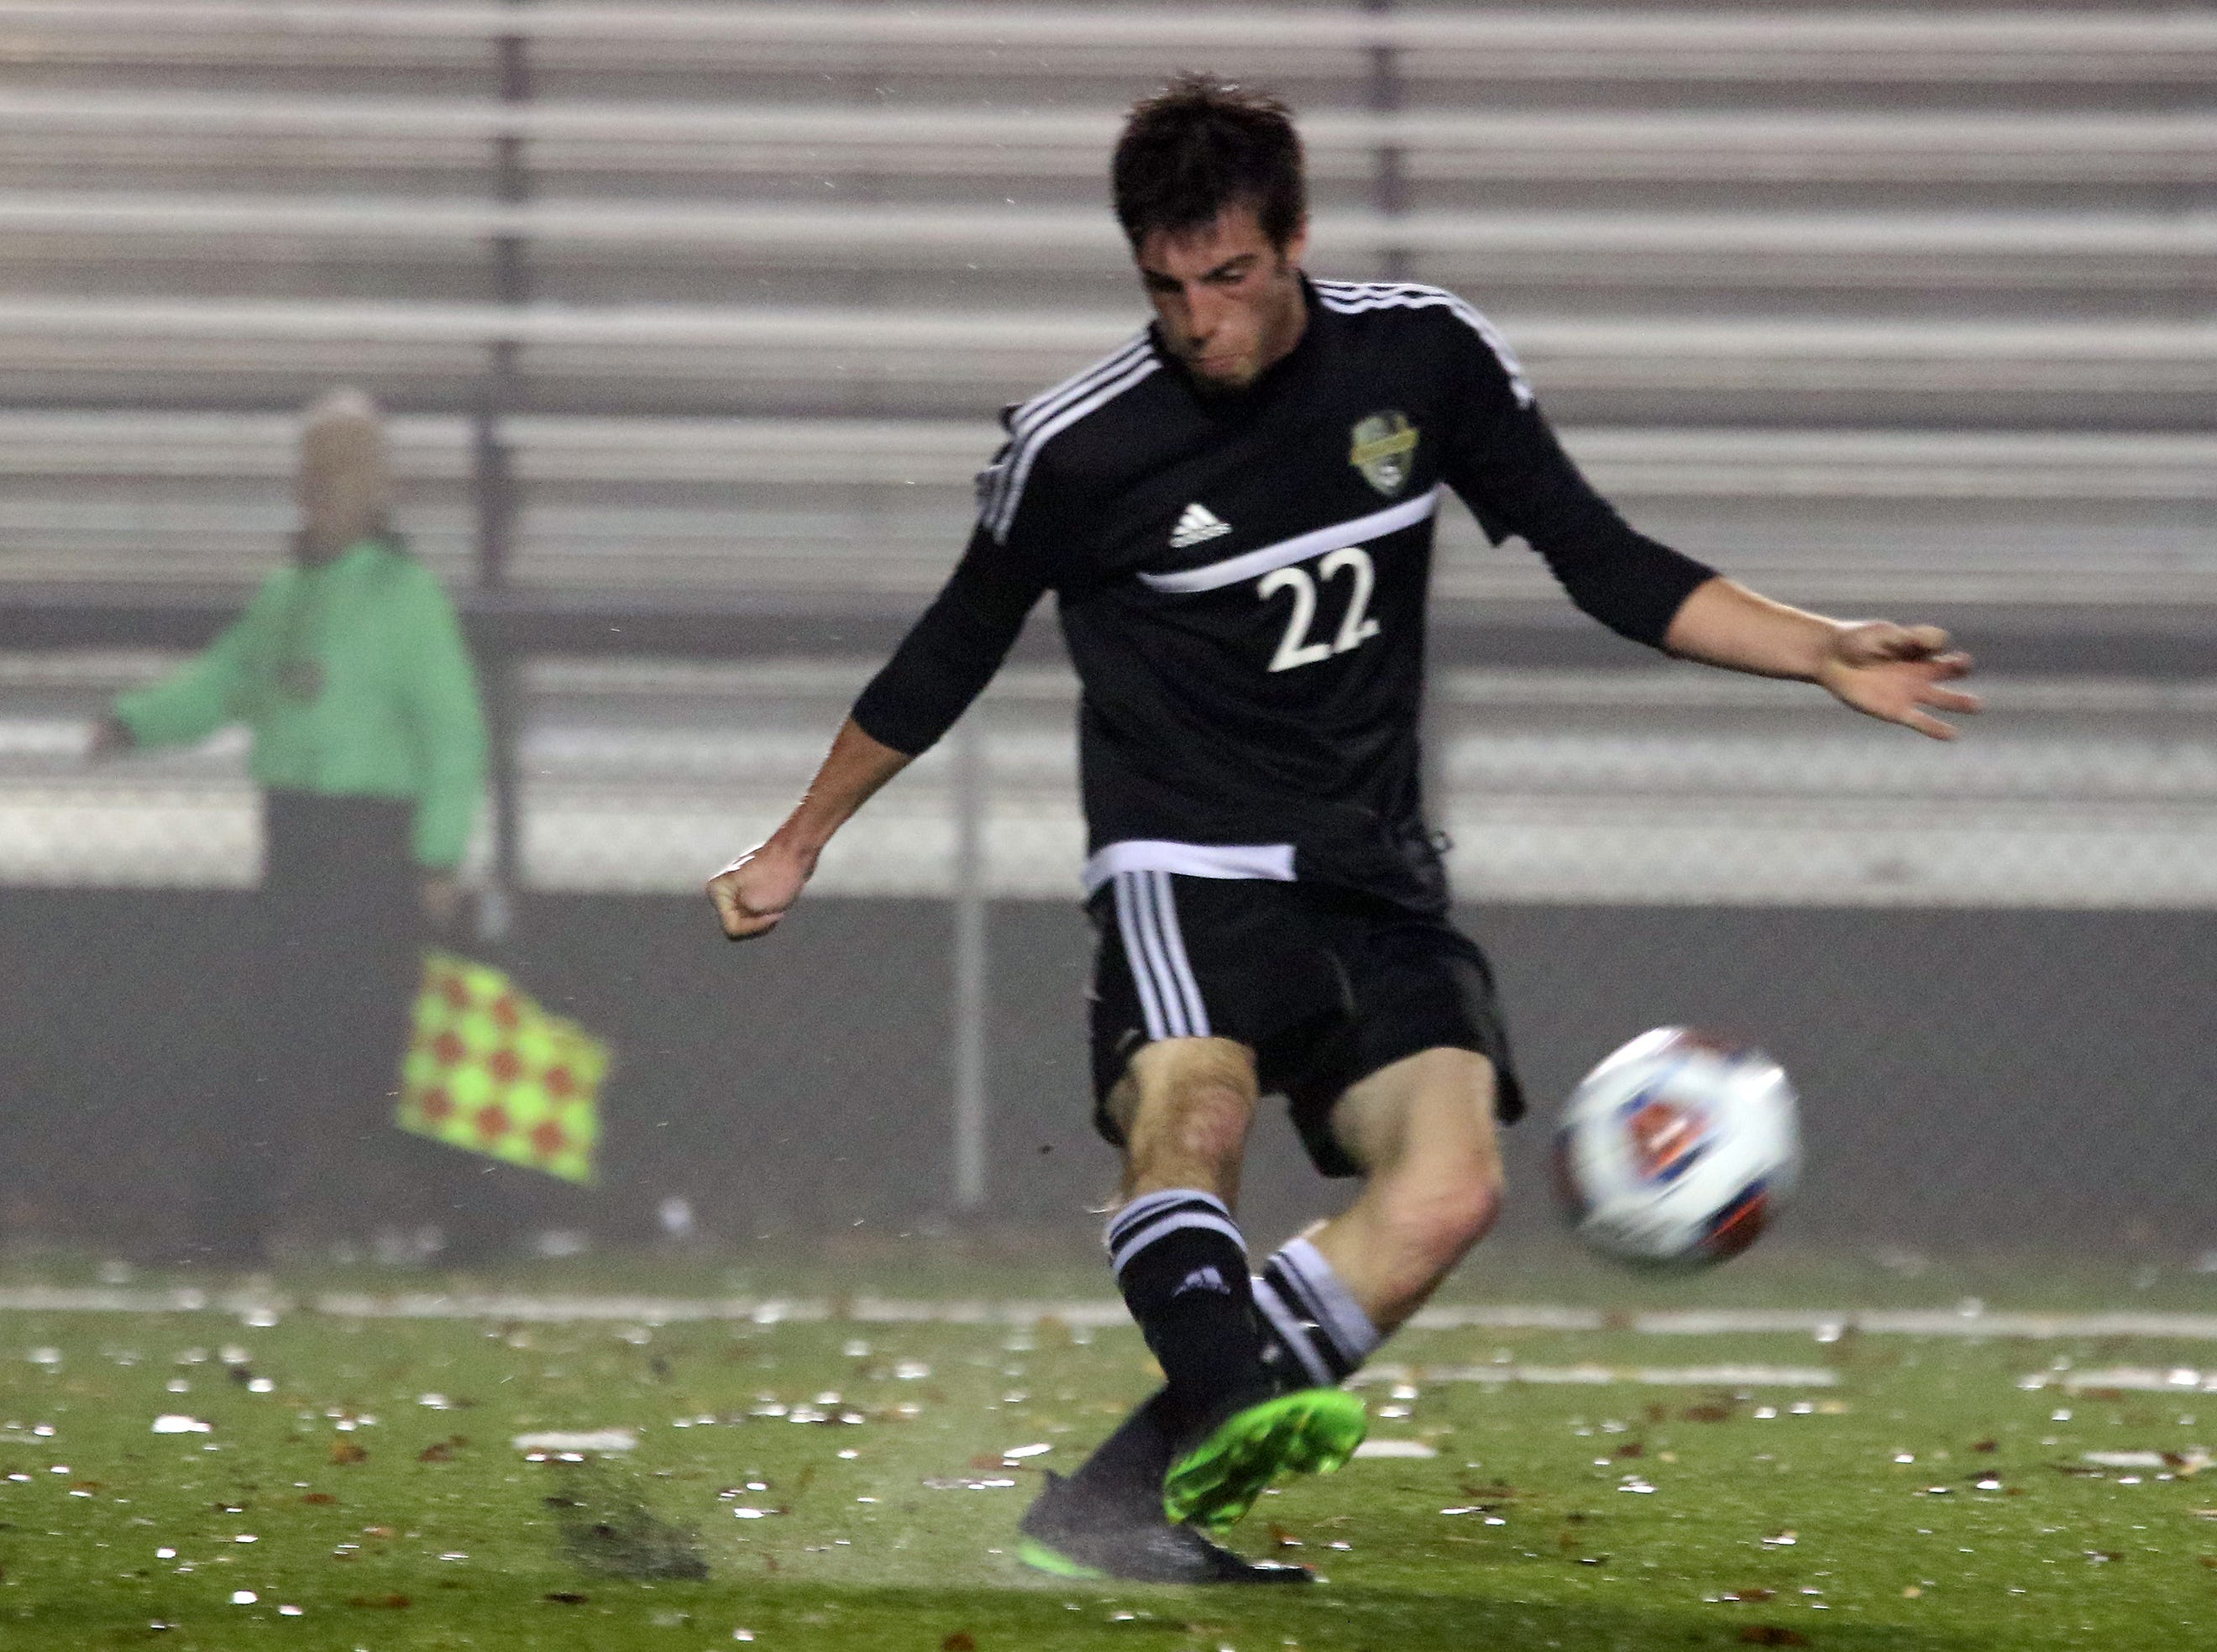 River View's Blake Ashcraft clears the ball against DeSales.